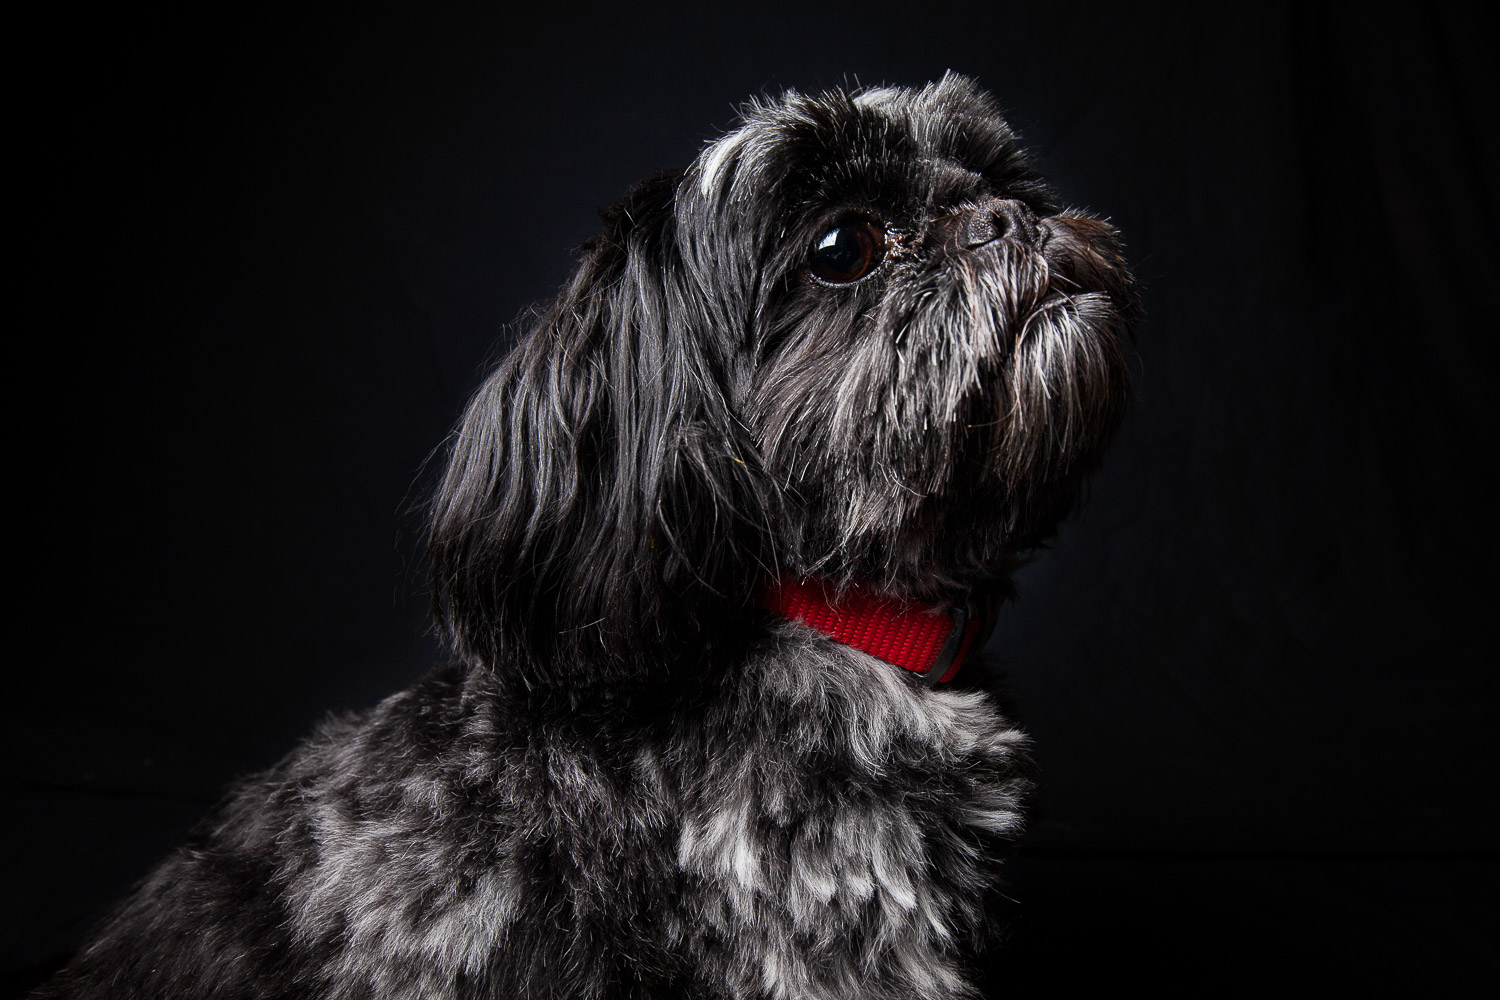 Ivy the Dog-6889RETOUCHED-FORWEB.jpg